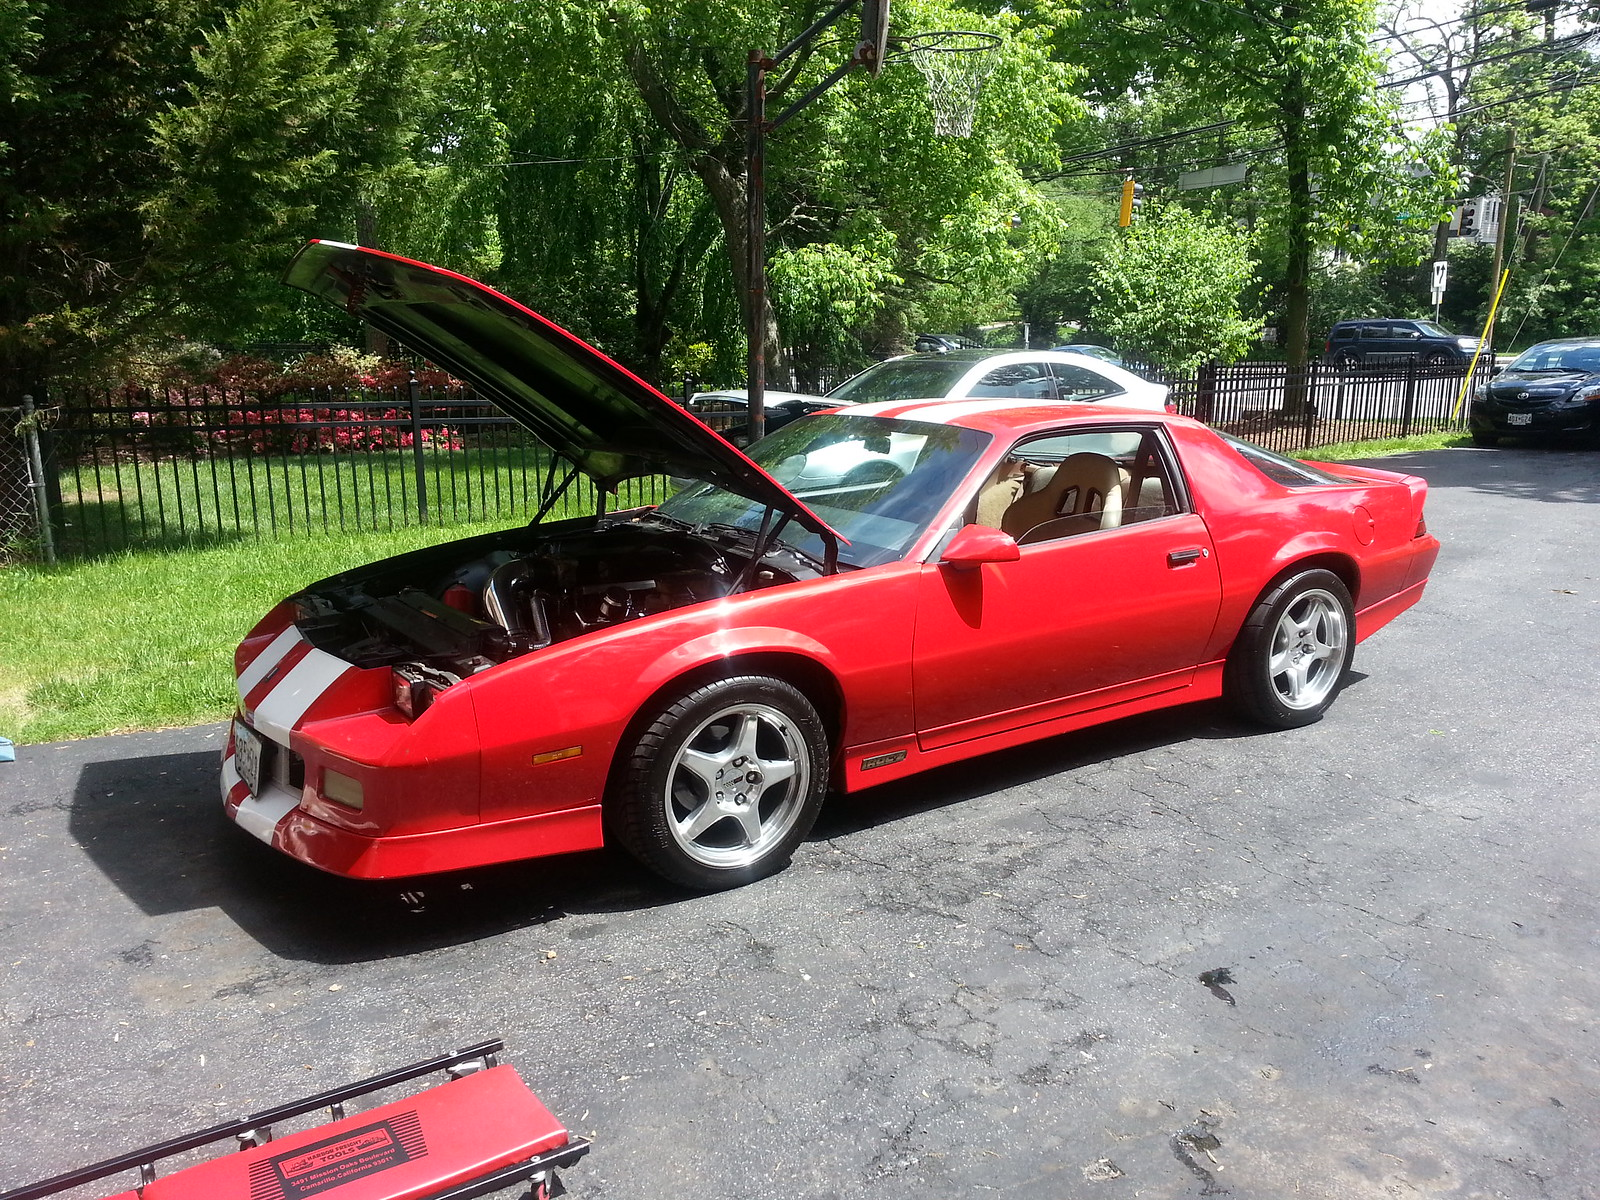 Maryland 1989 Iroc 408 T56 12 Bolt Third Generation F